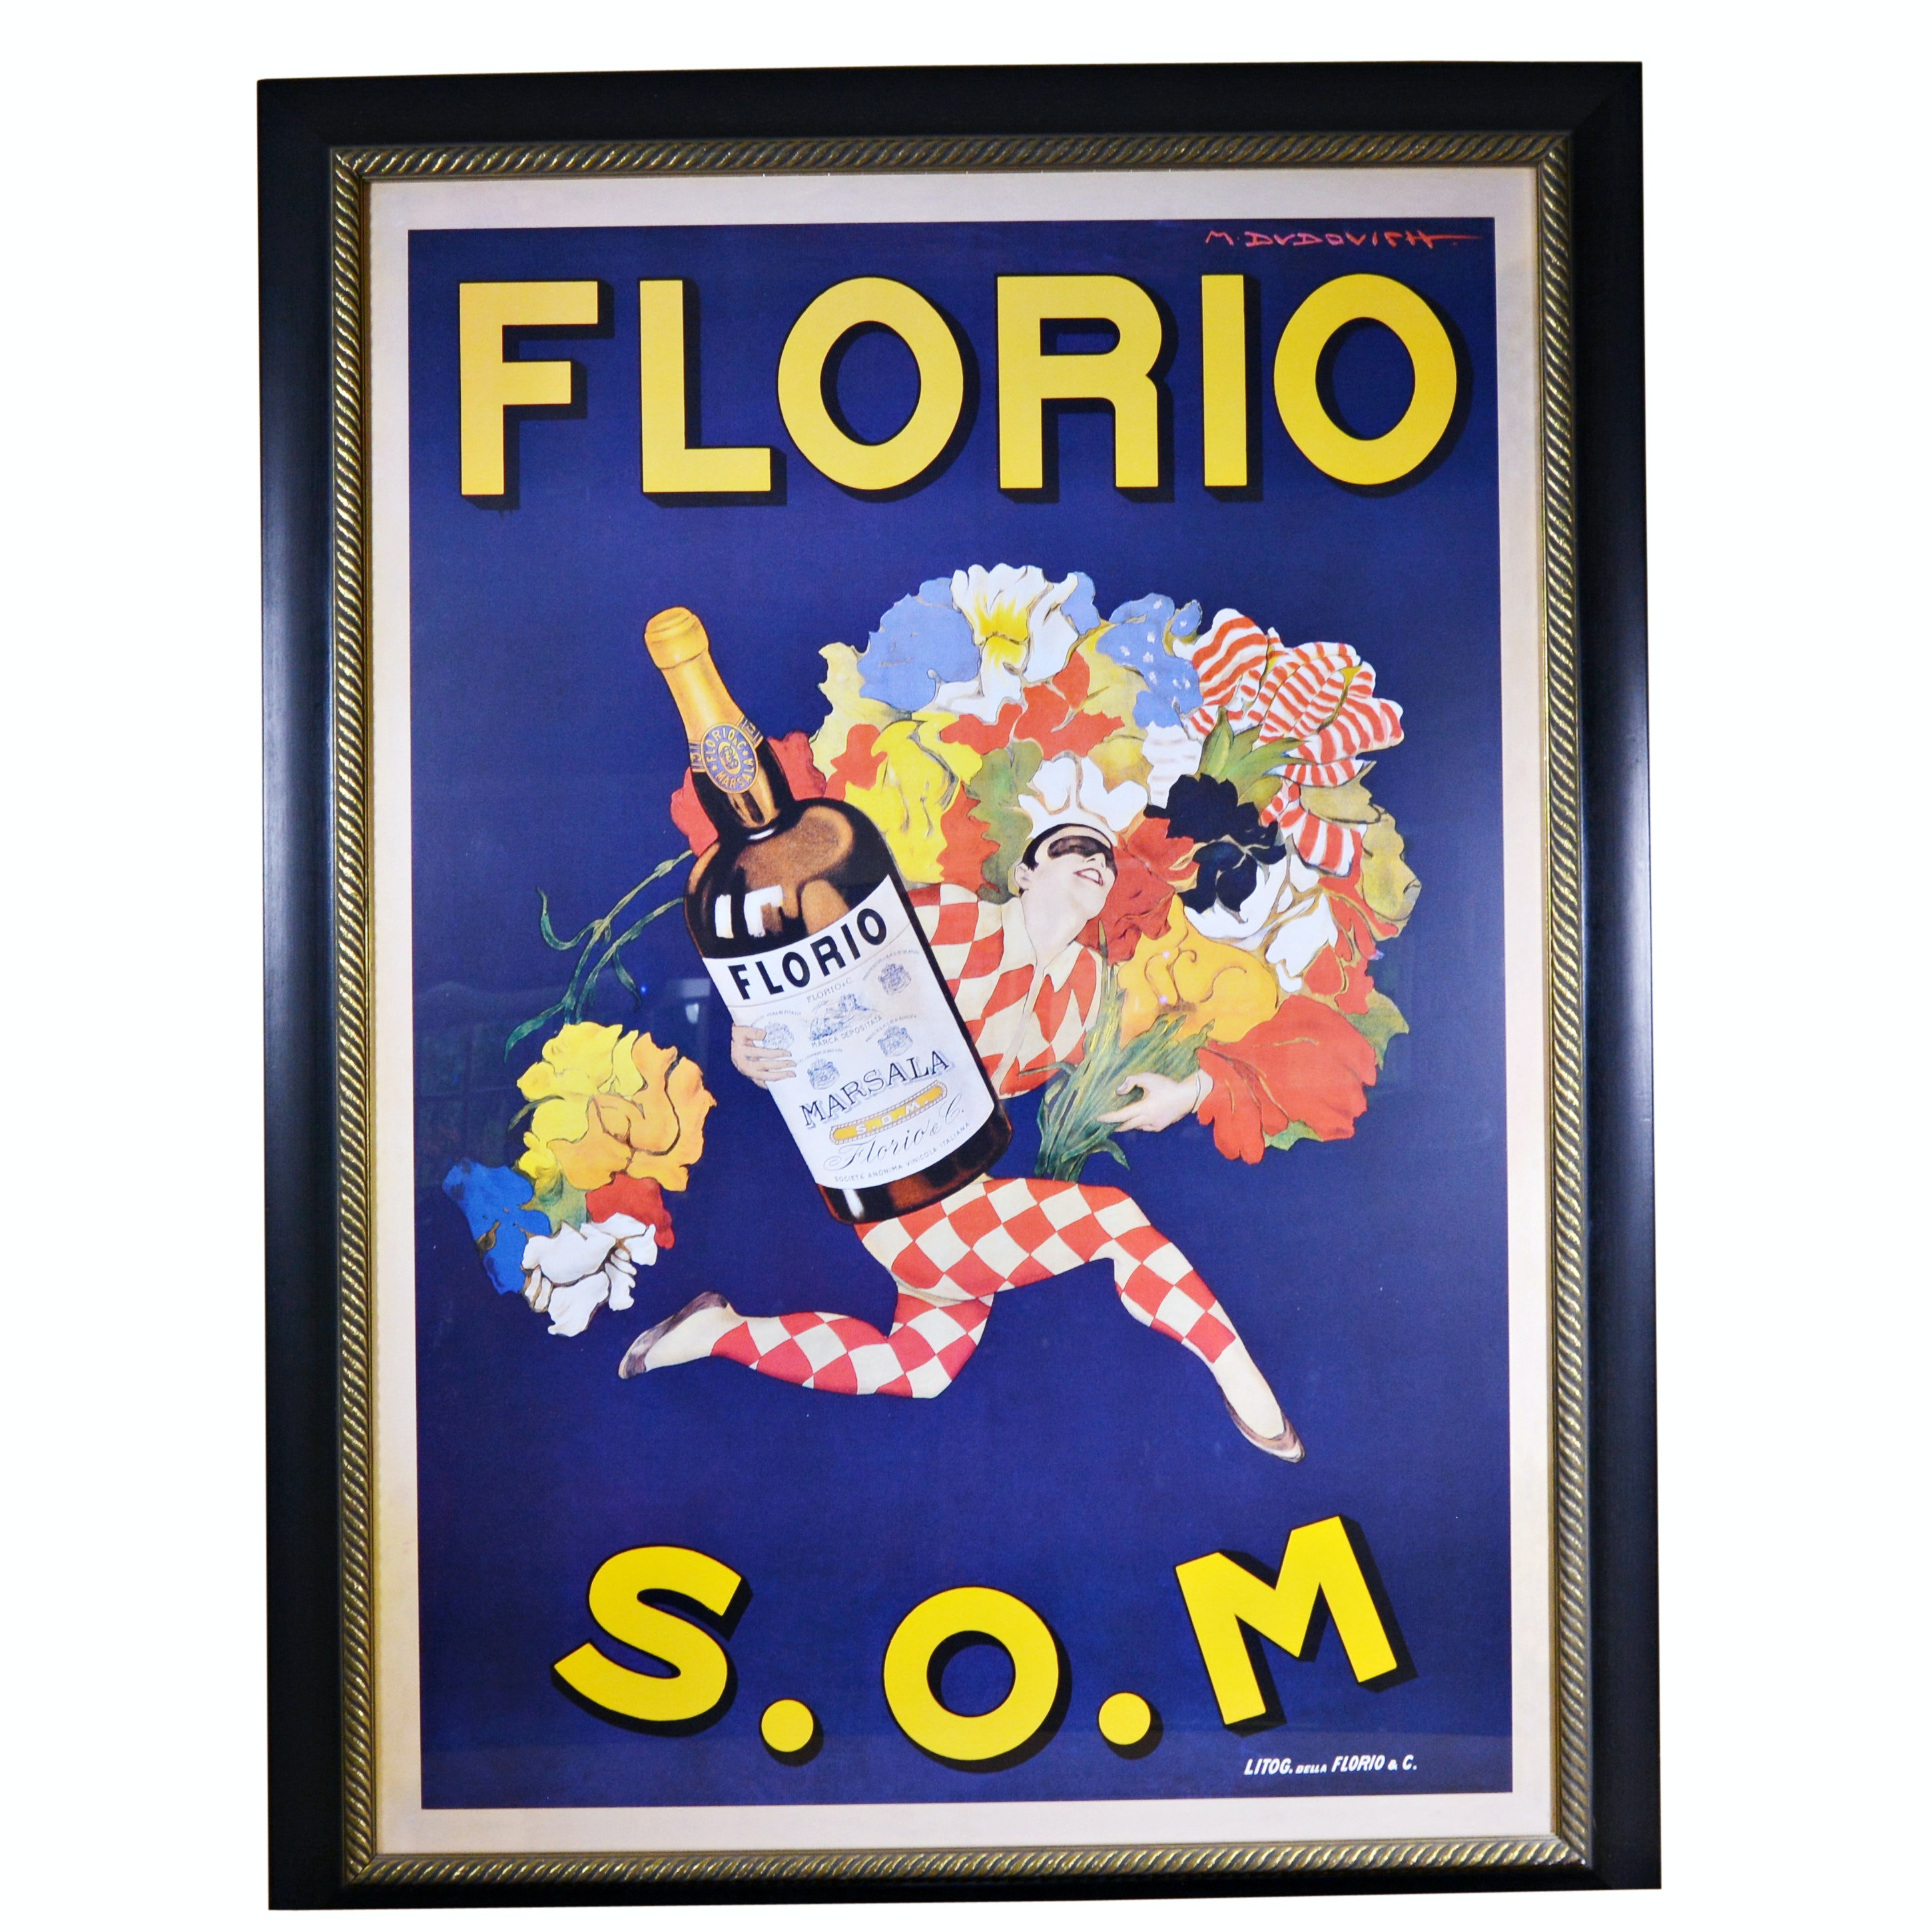 Florio S.O.M. Marsala Wine Advertising Poster